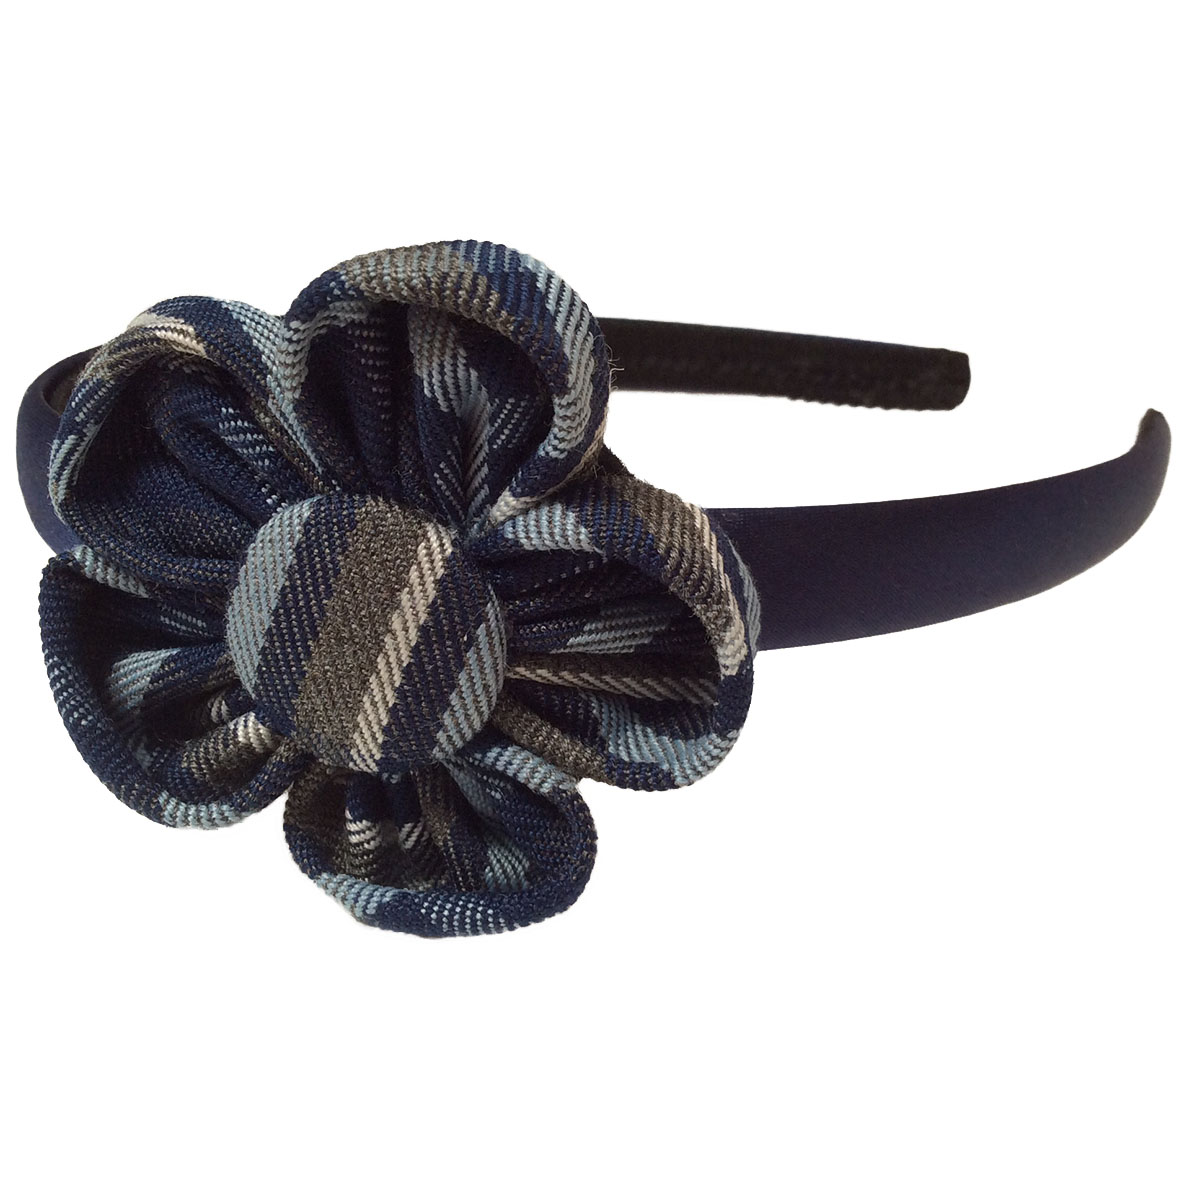 Winter school uniform flower hair accessory